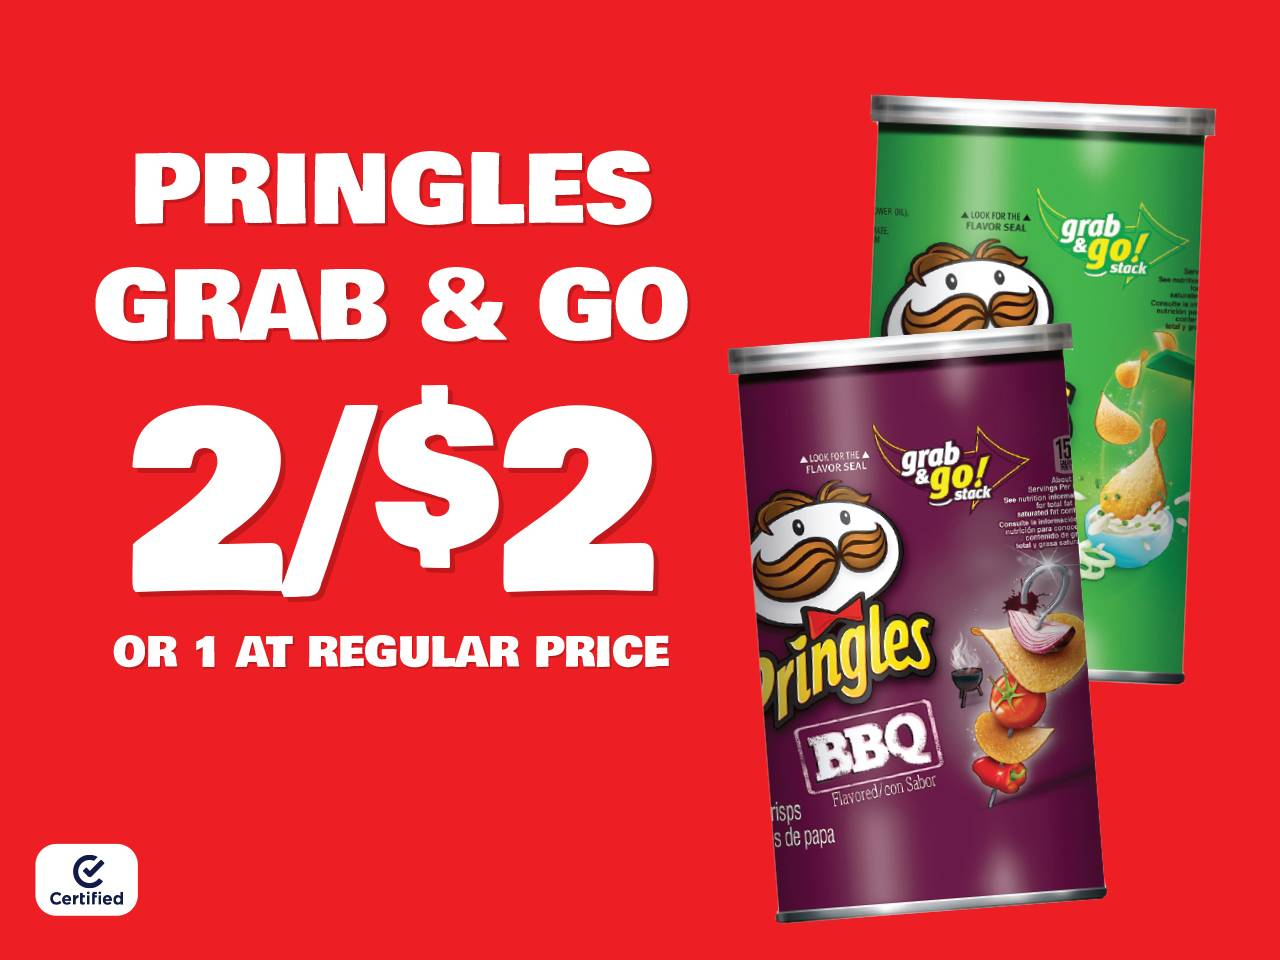 Pringles Grab & Go 2 for $2 or 1 at Reg Price